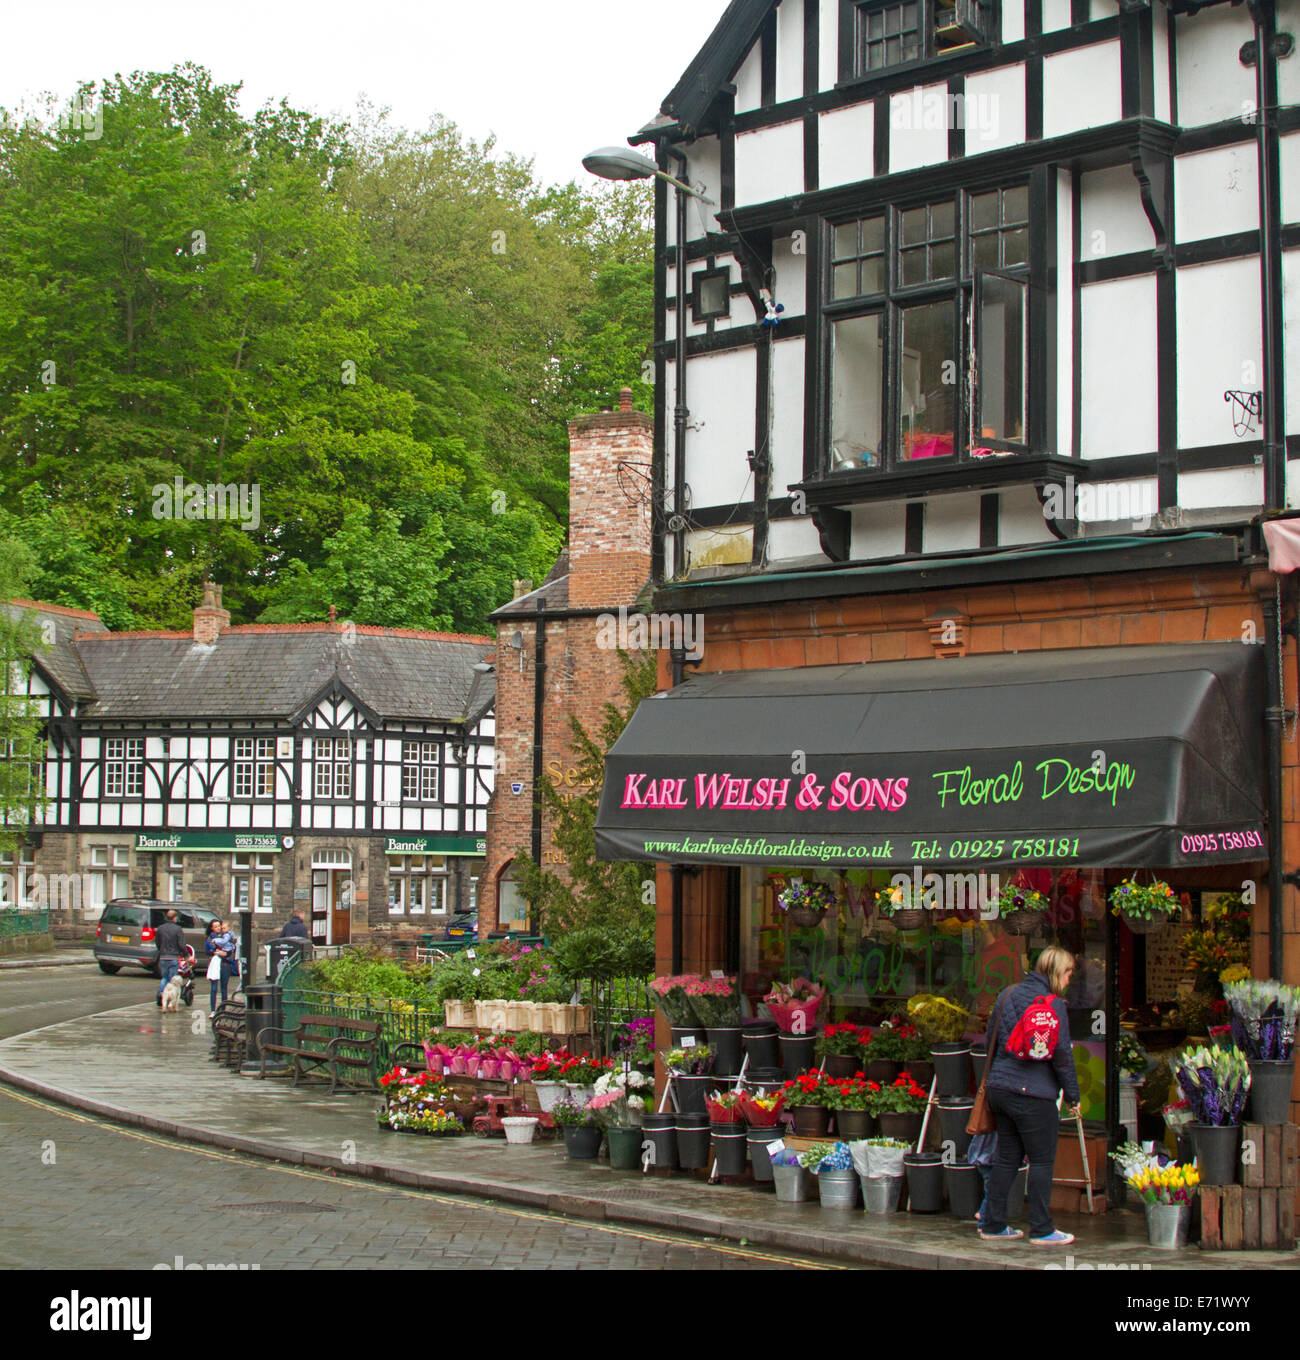 Main street and florist's shop with woman admiring colourful footpath display at picturesque village of Lymm - Stock Image